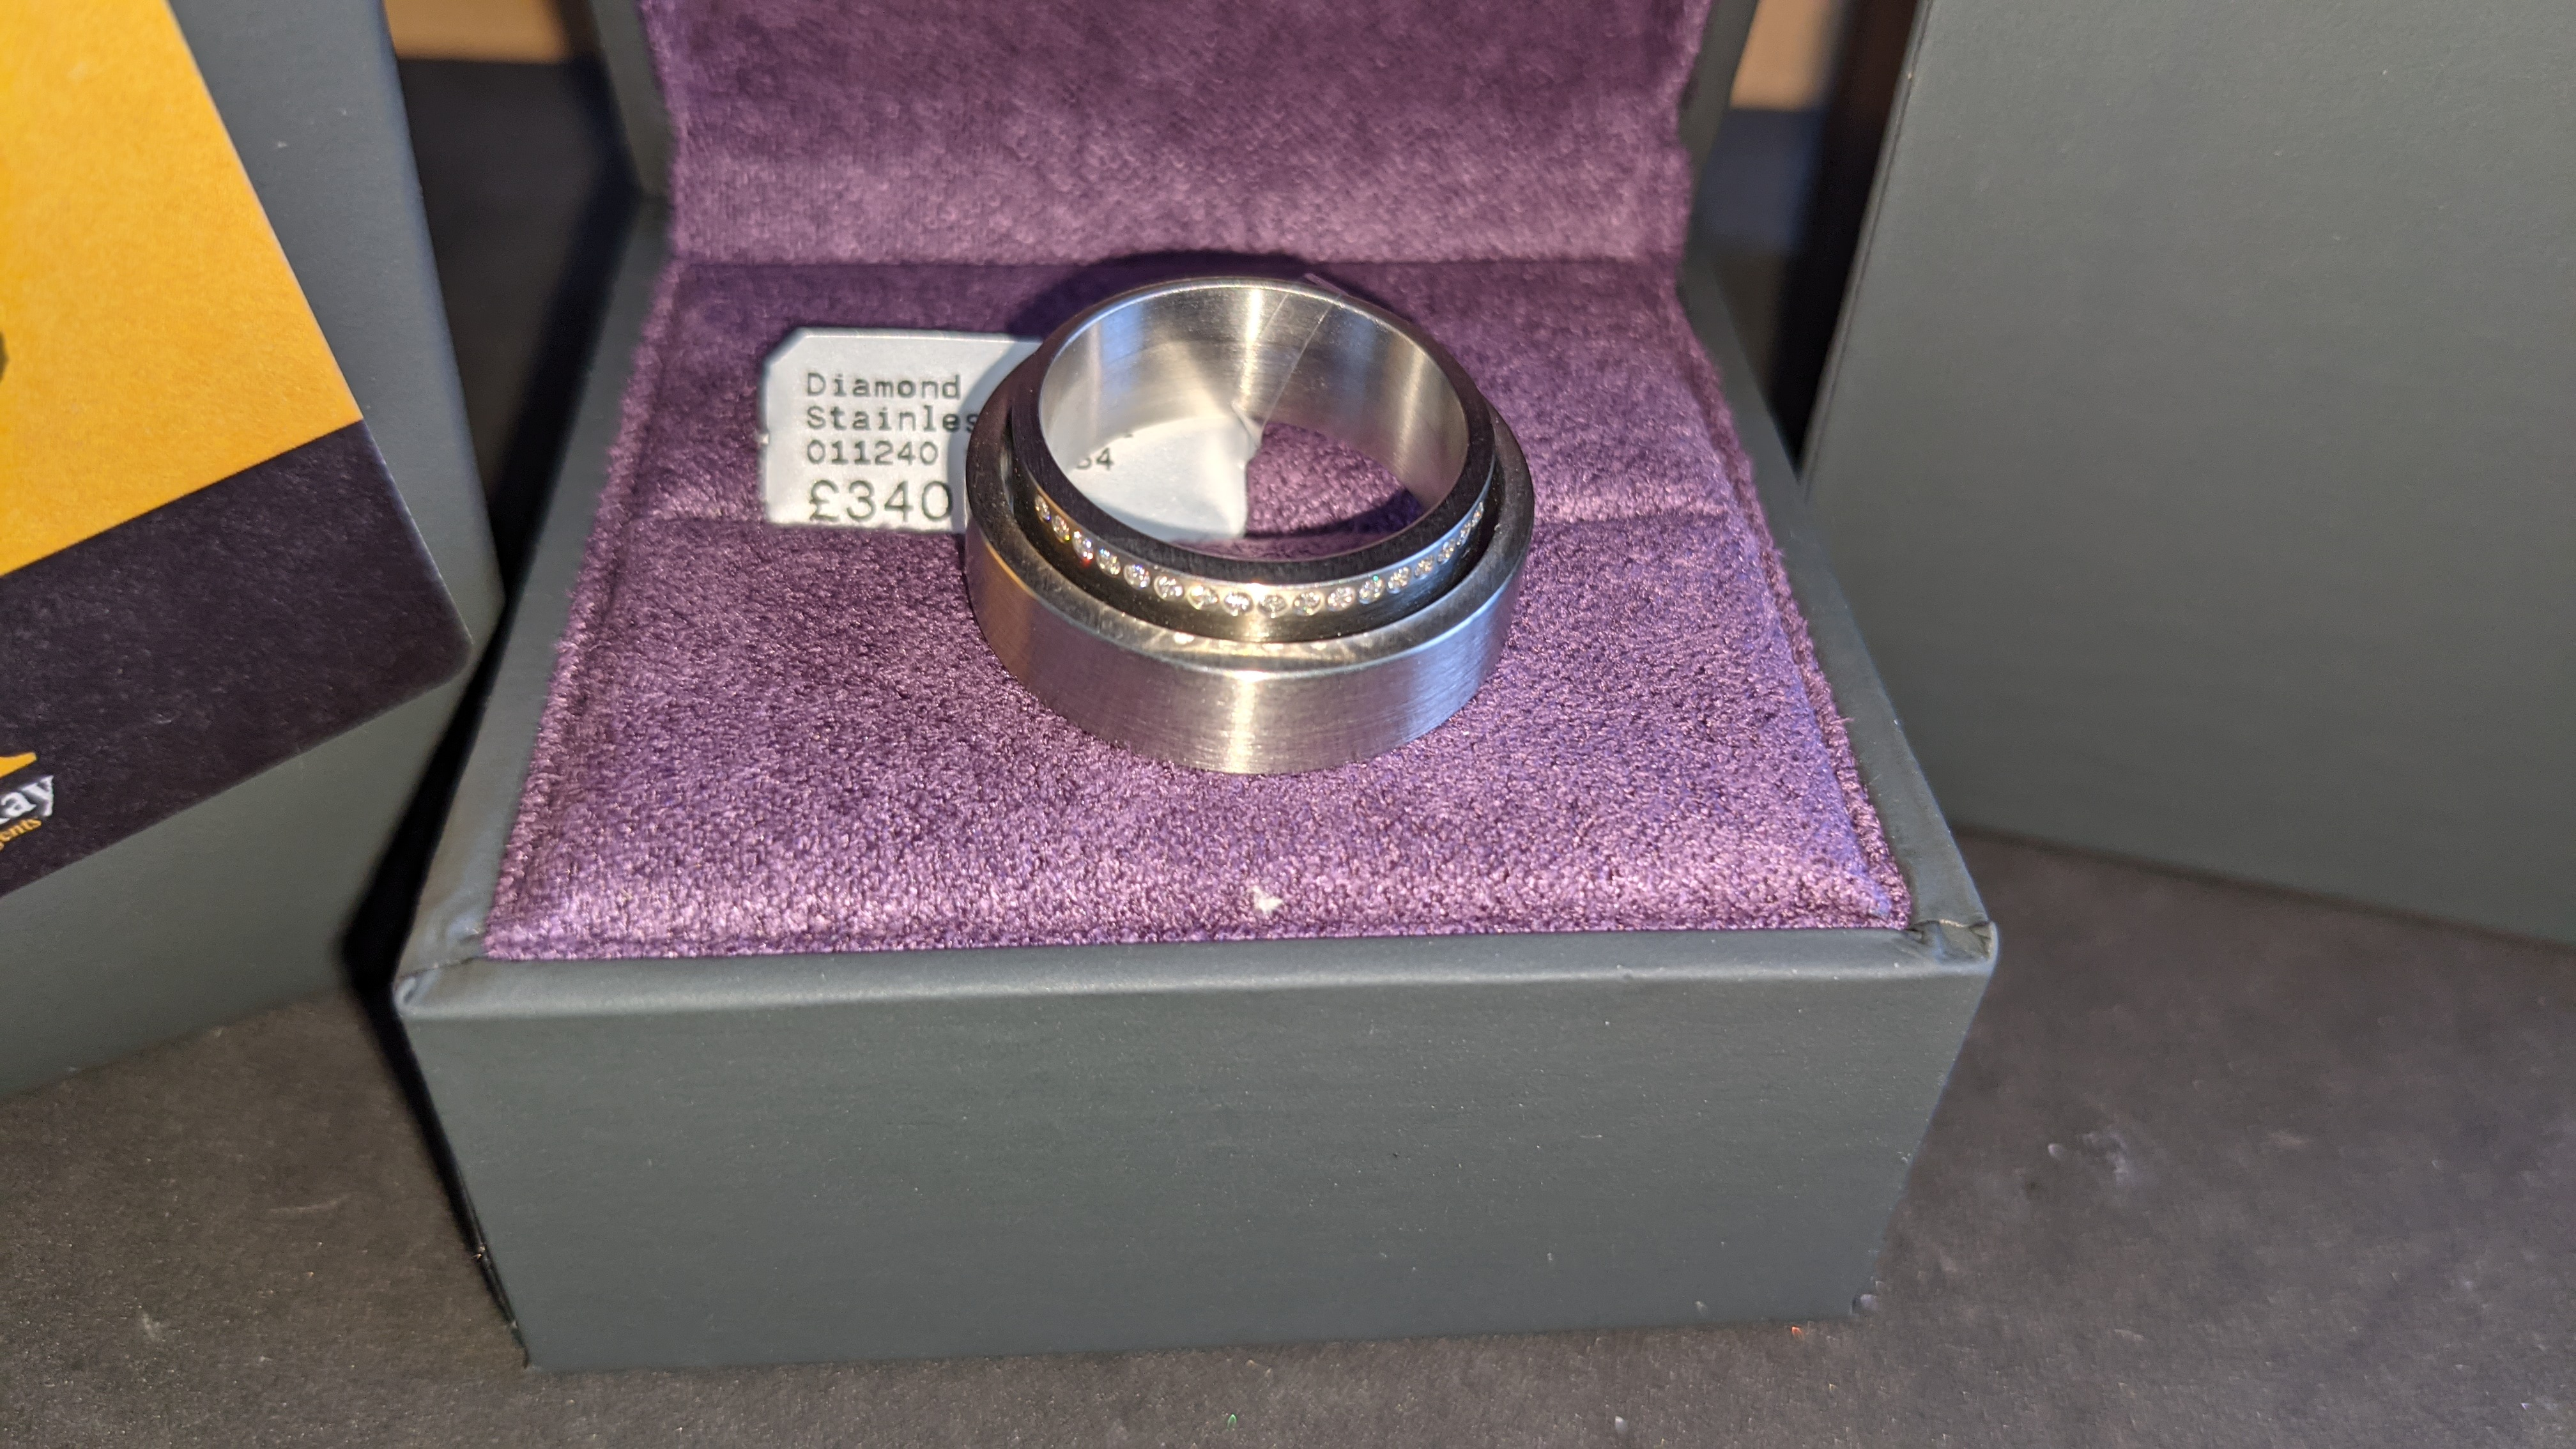 Stainless steel & diamond unusually shaped ring with inner & outer circles joined on one side, RRP £ - Image 3 of 11